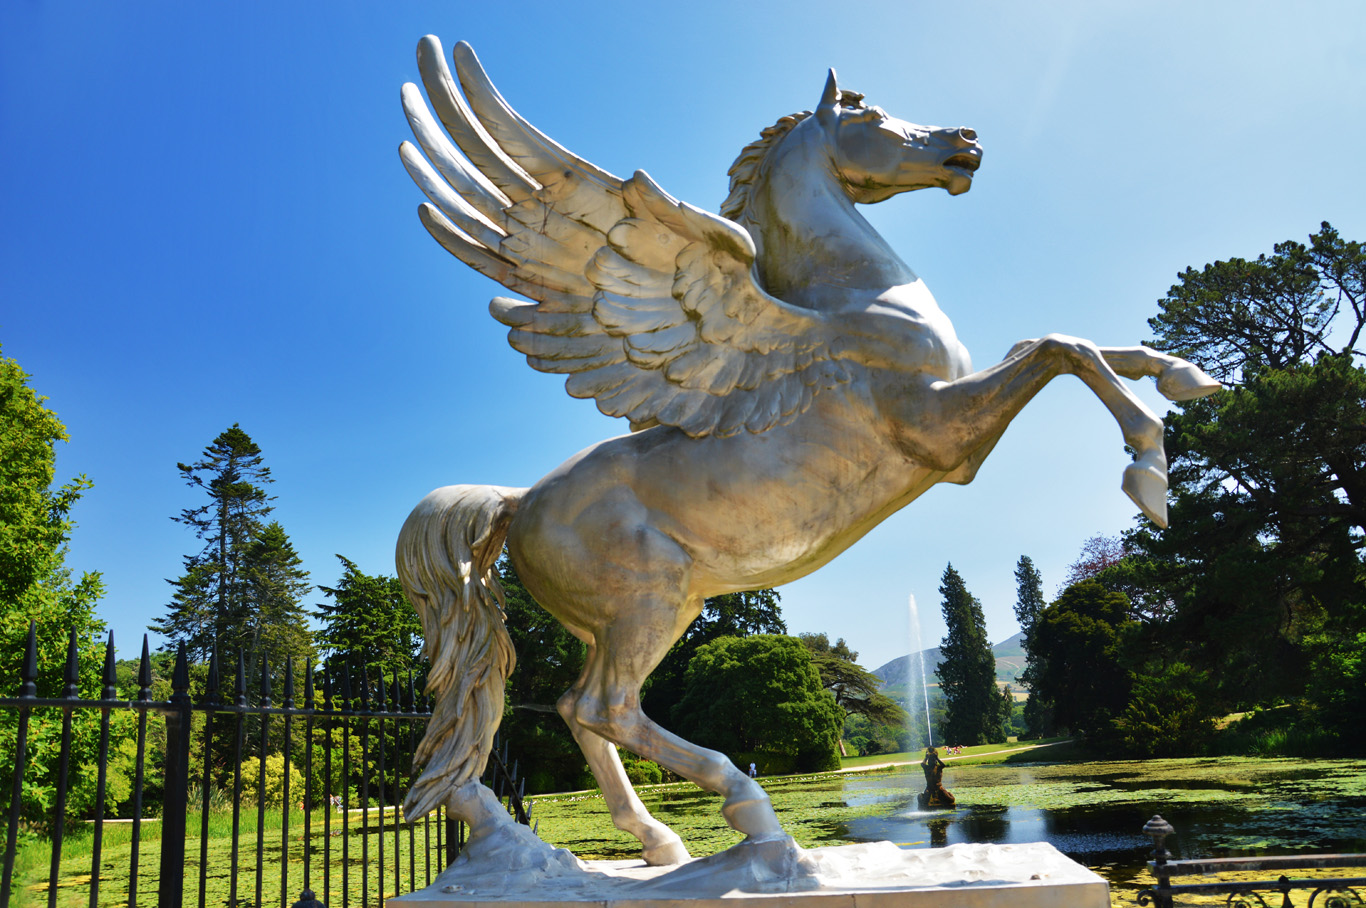 A sculpture of a horse at the Triton lake